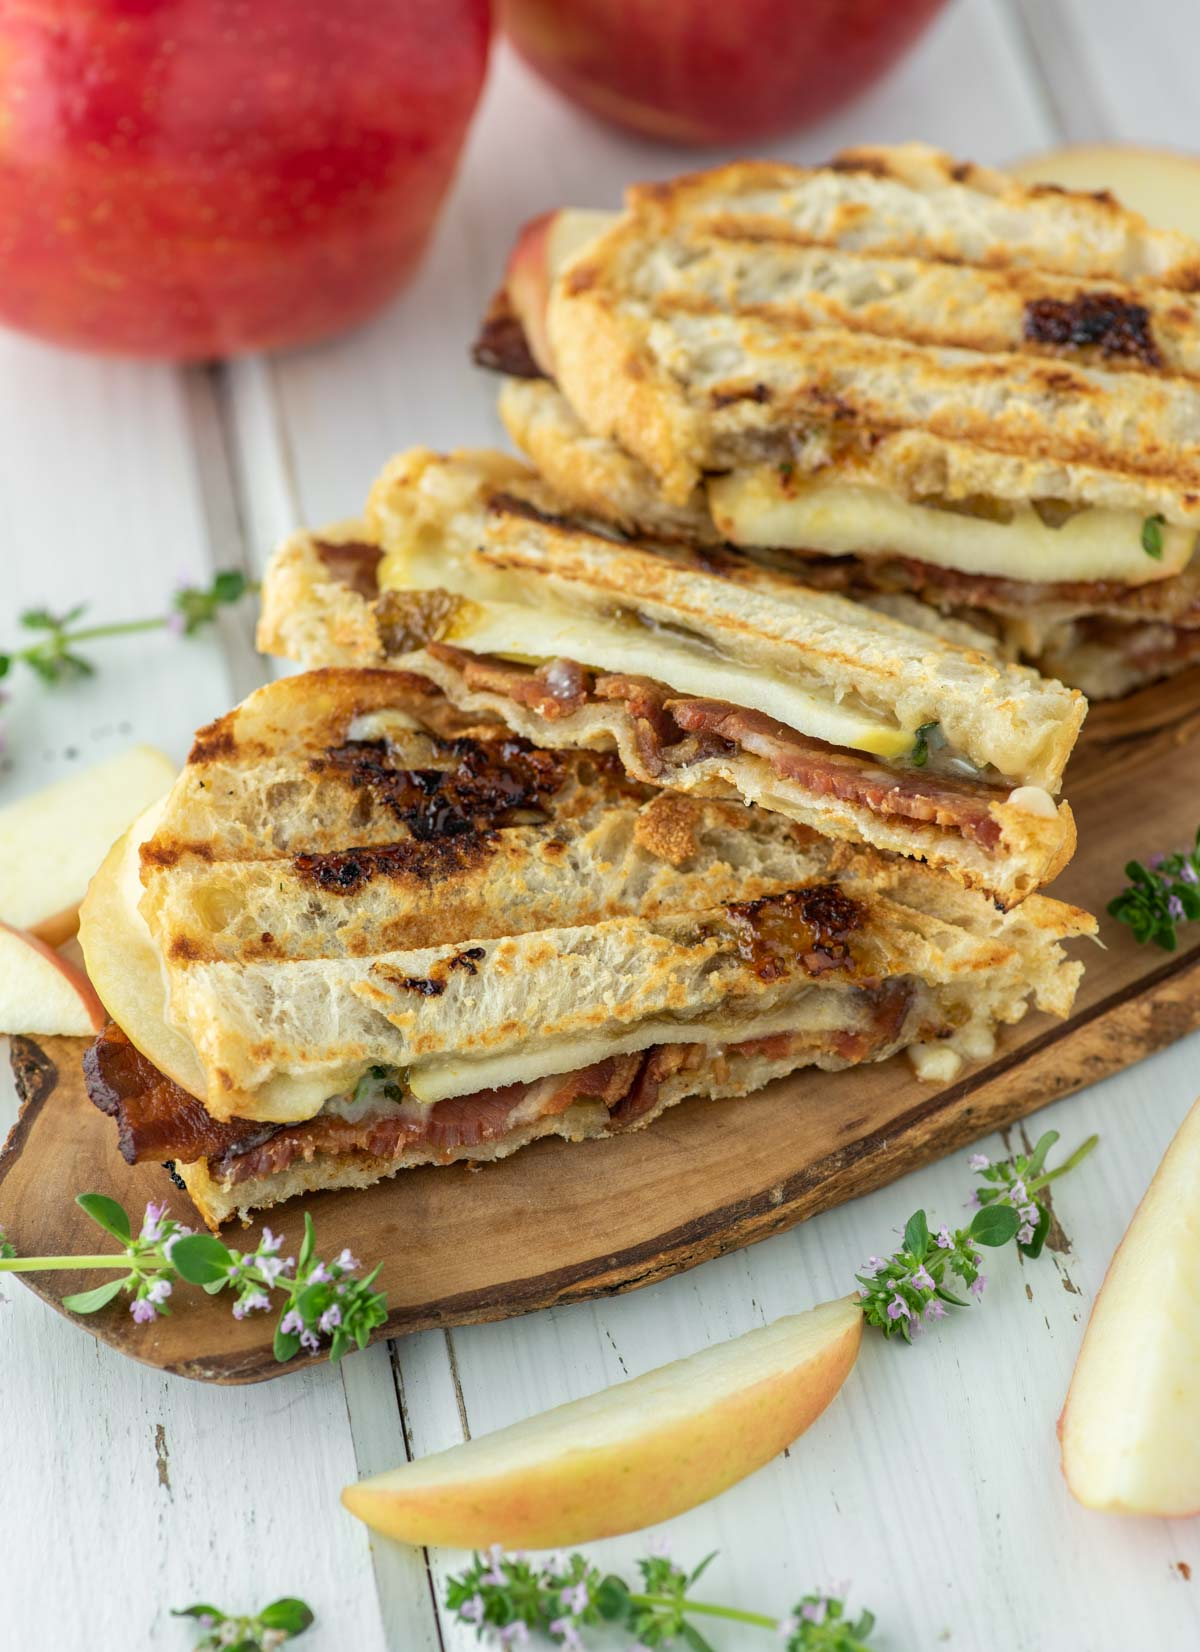 apple cheddar bacon paninis on wood board